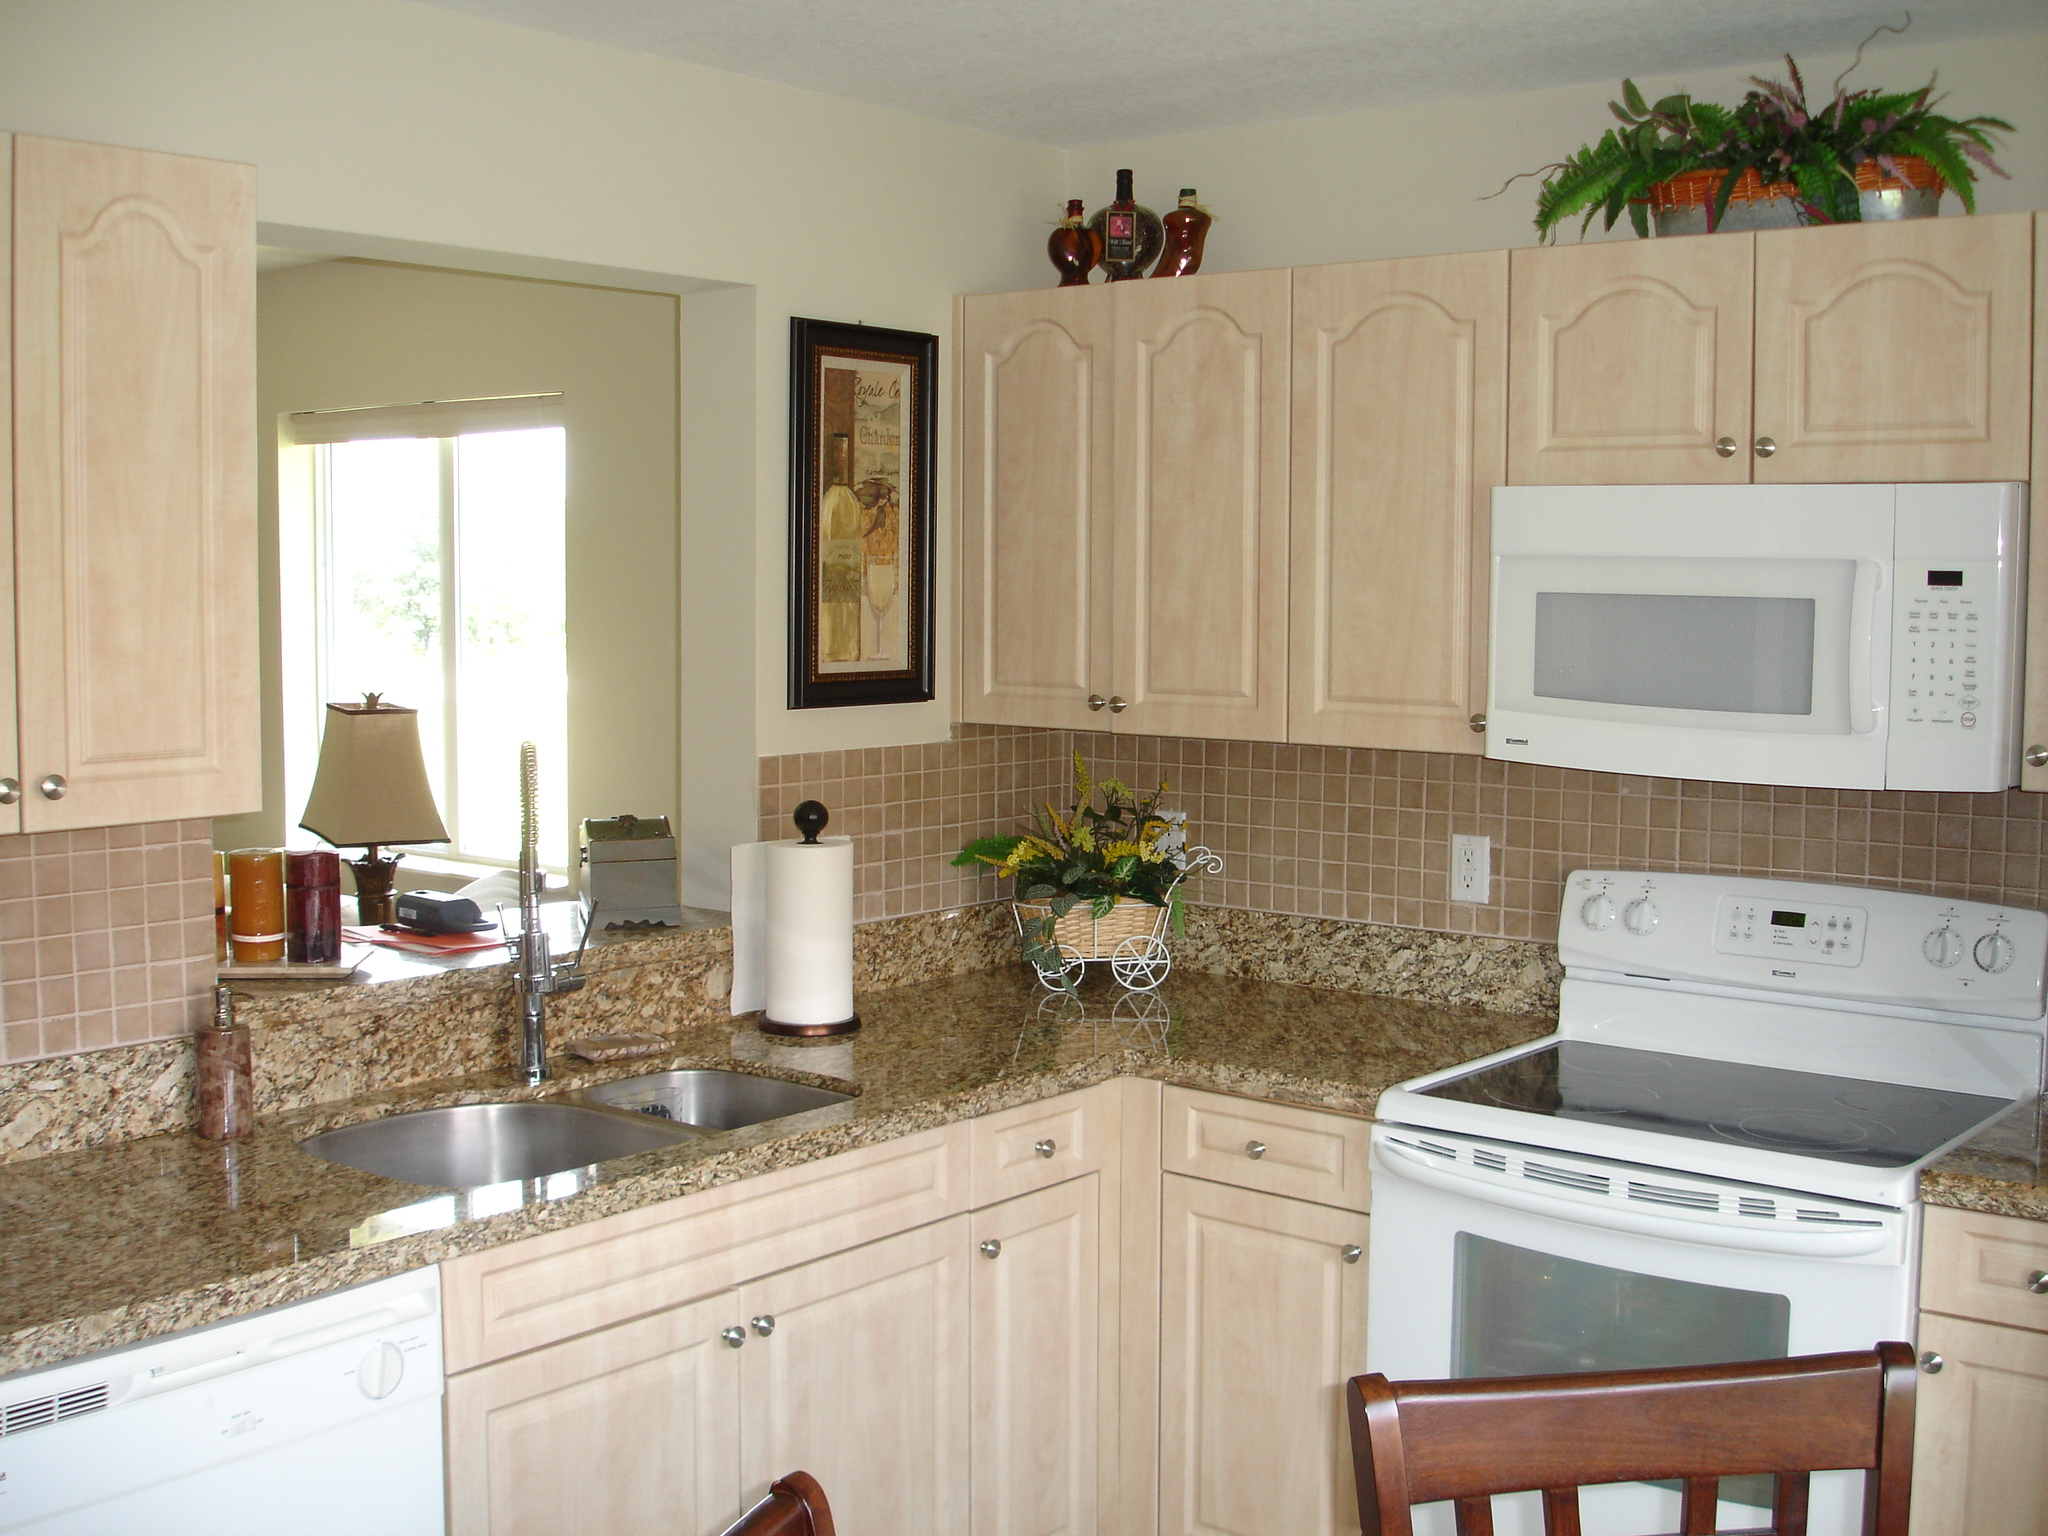 Ready To Move In – 3/2 in Jasmine Lakes $1500.00